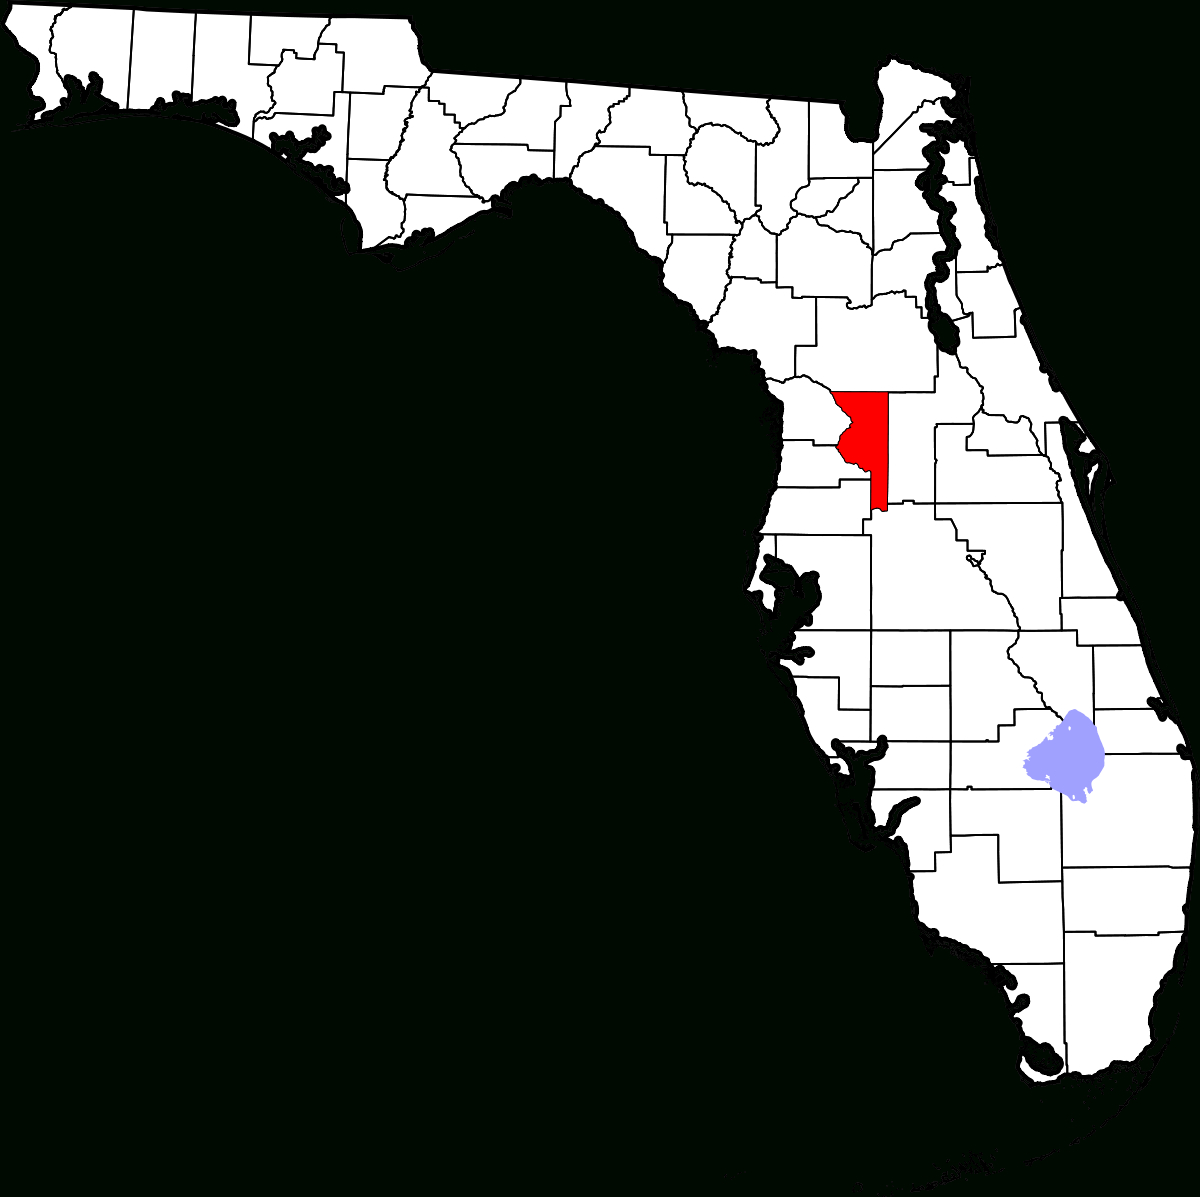 National Register Of Historic Places Listings In Sumter County - Webster Florida Map